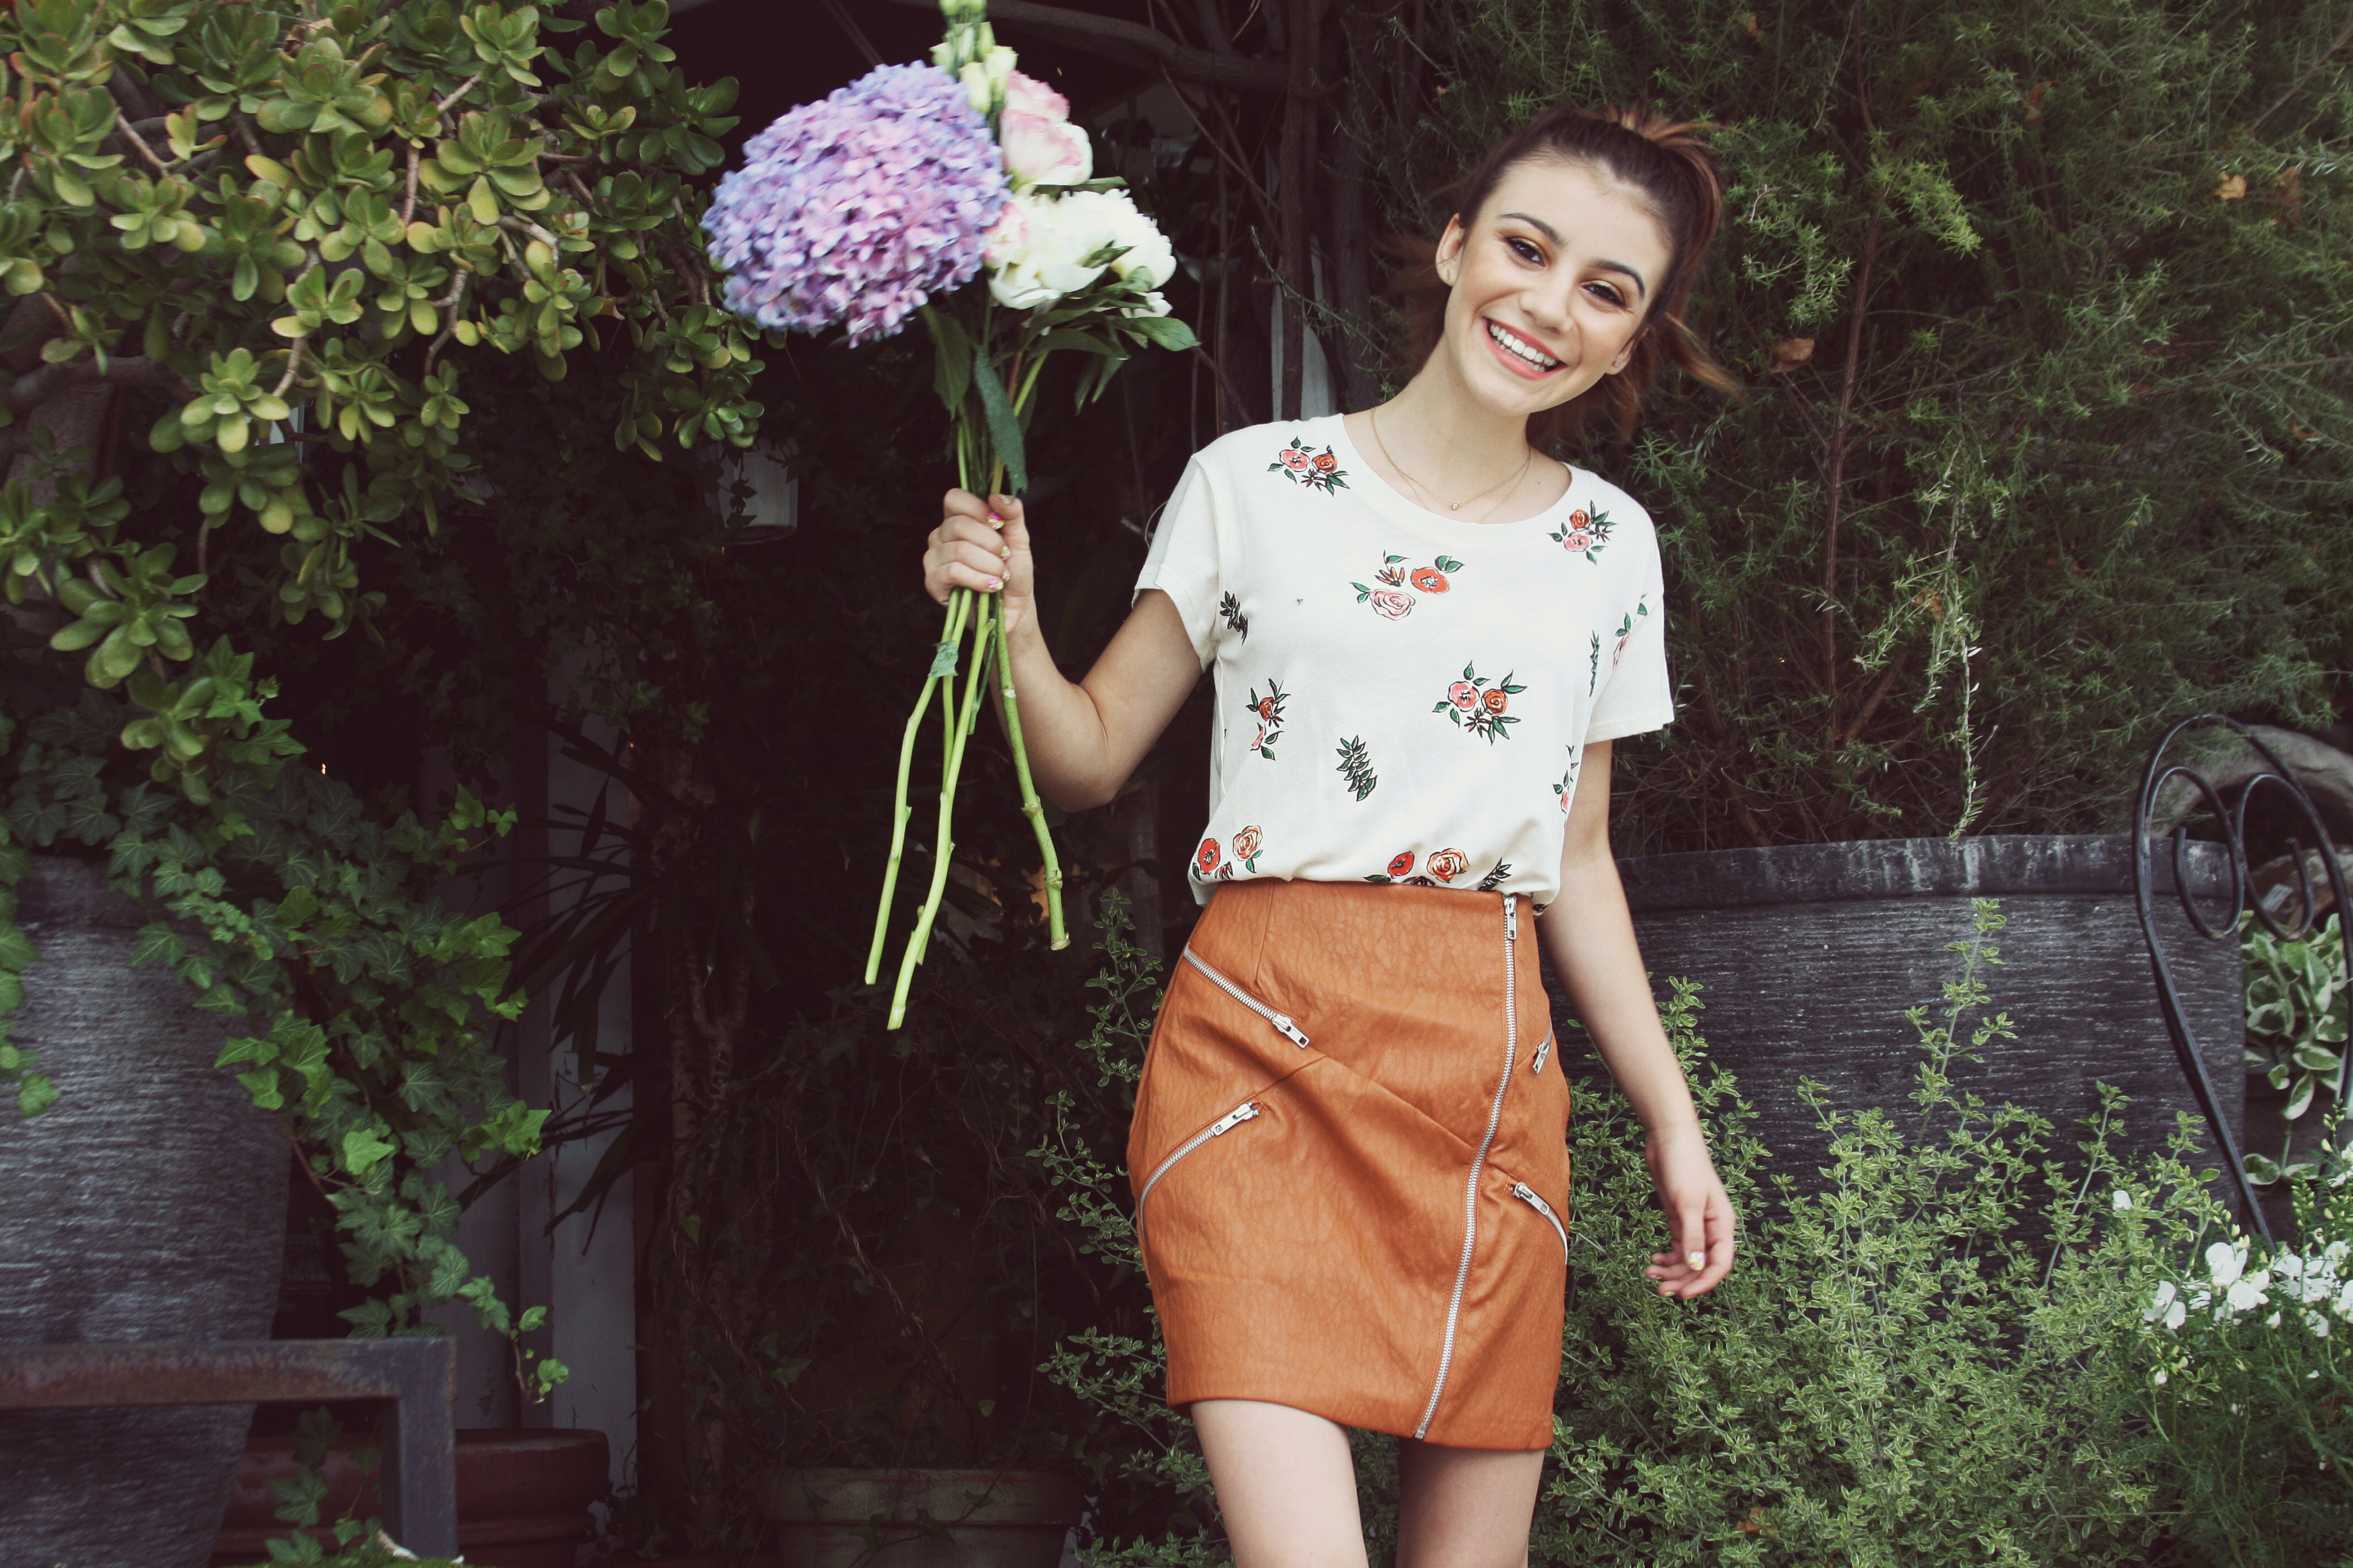 G Hannelius Launches Fashion Collection with The Style ...